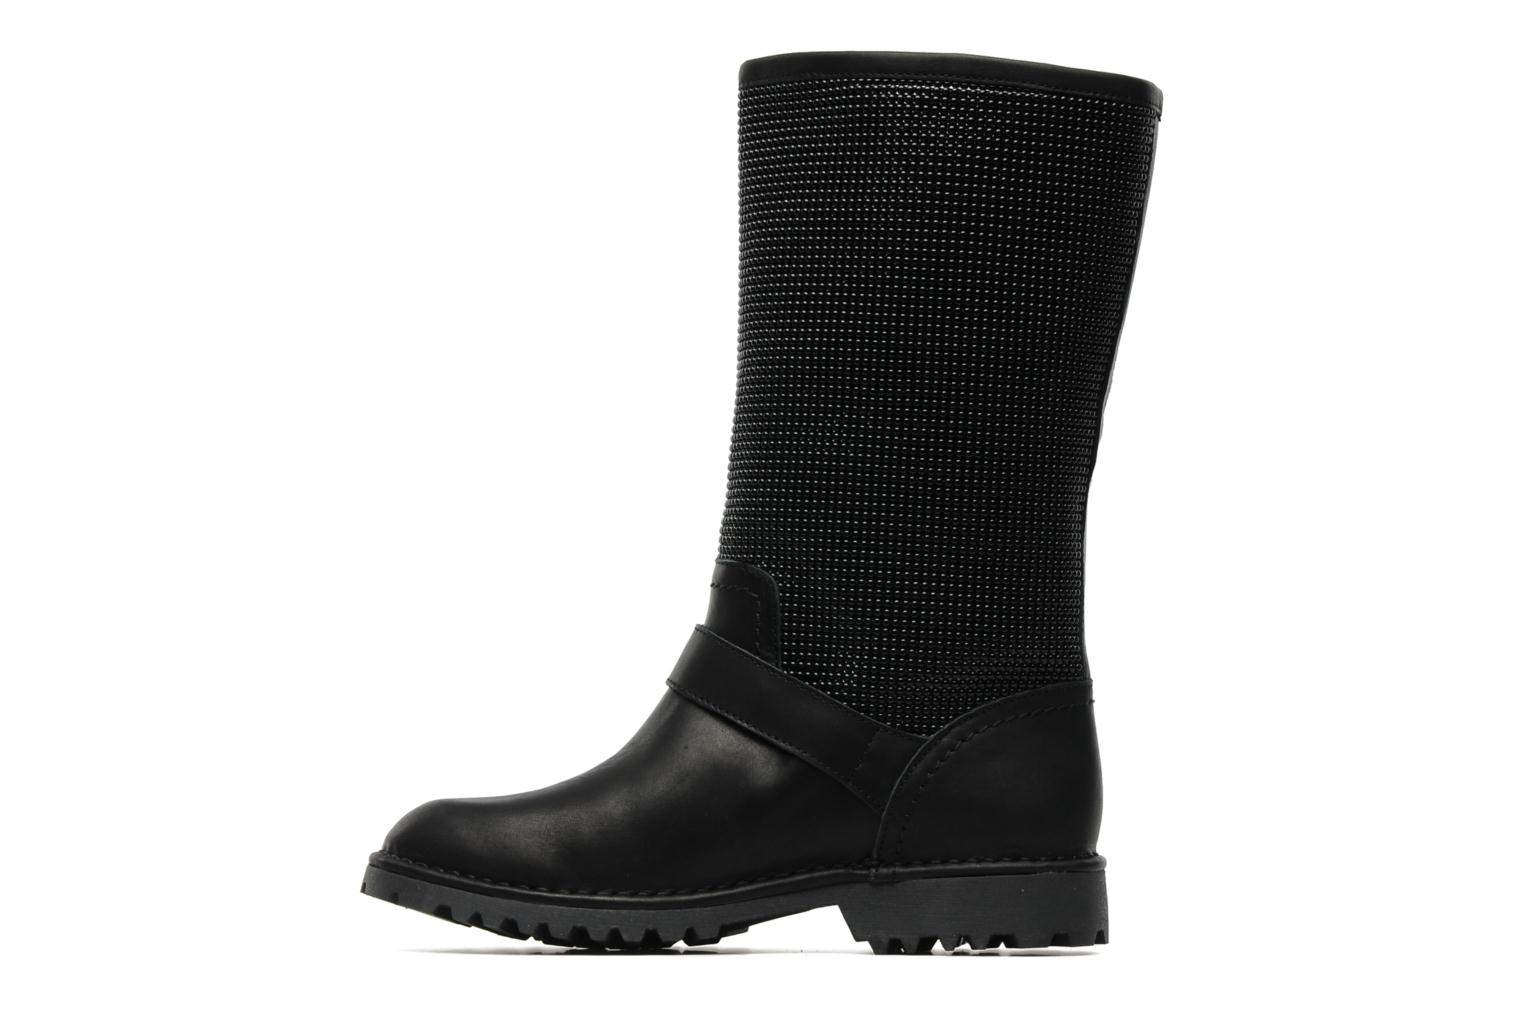 GUNMETAL BOOT Black